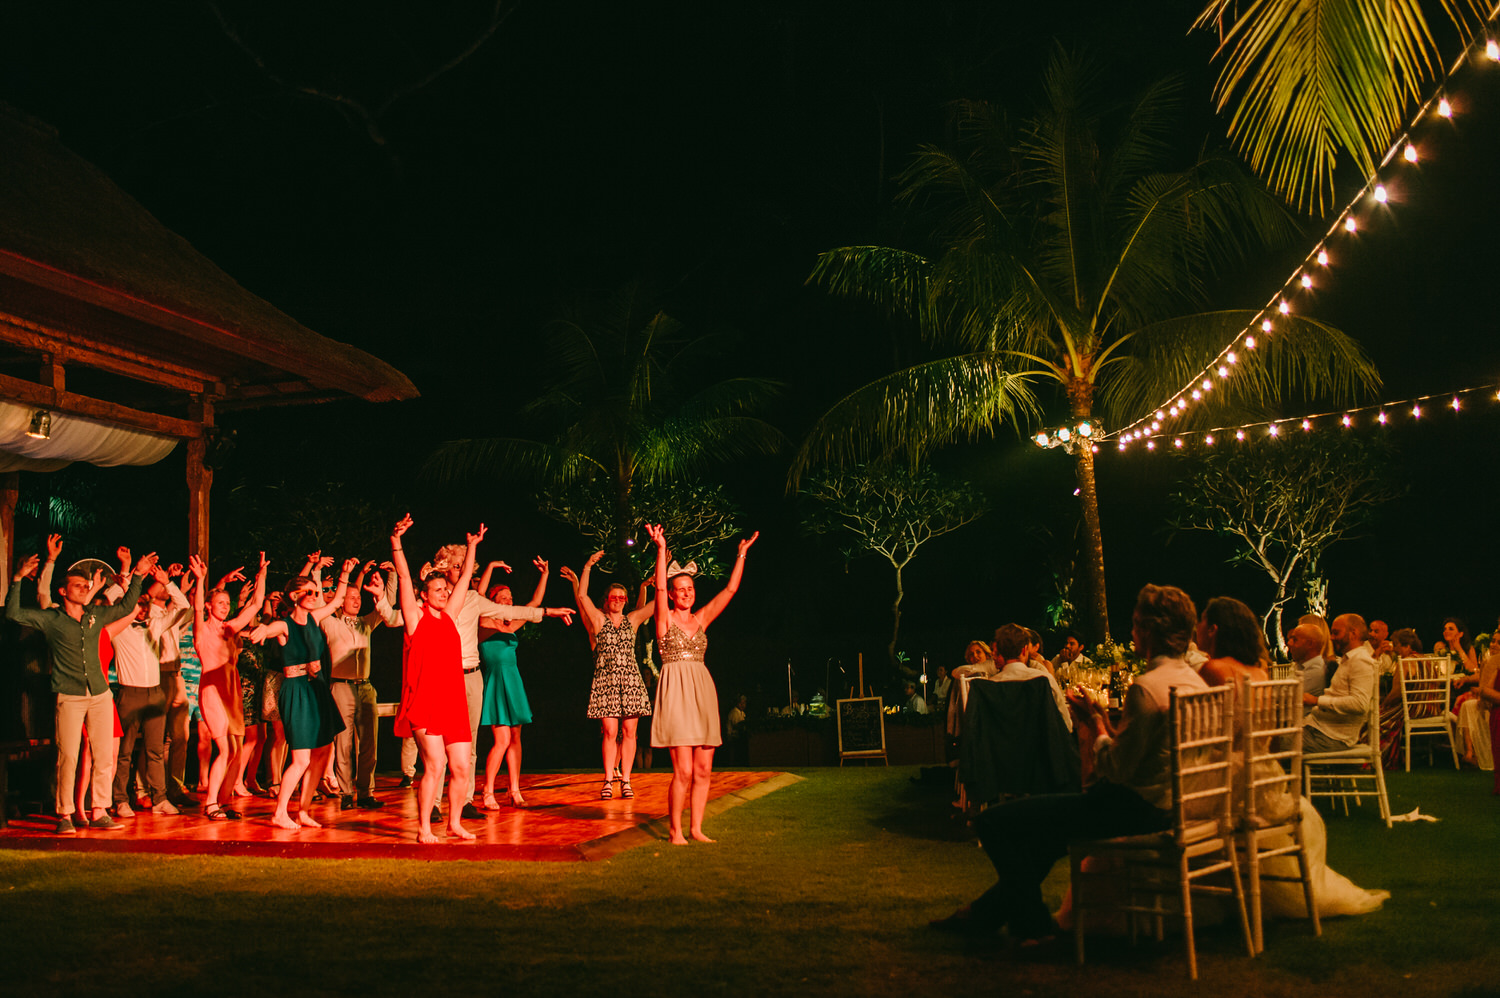 bali-wedding-destination-wedding-in-bali-bali-photographer-the-sanctuary-villa-profesional-bali-wedding-photographer-diktatphotography-clement-armine-wedding-102